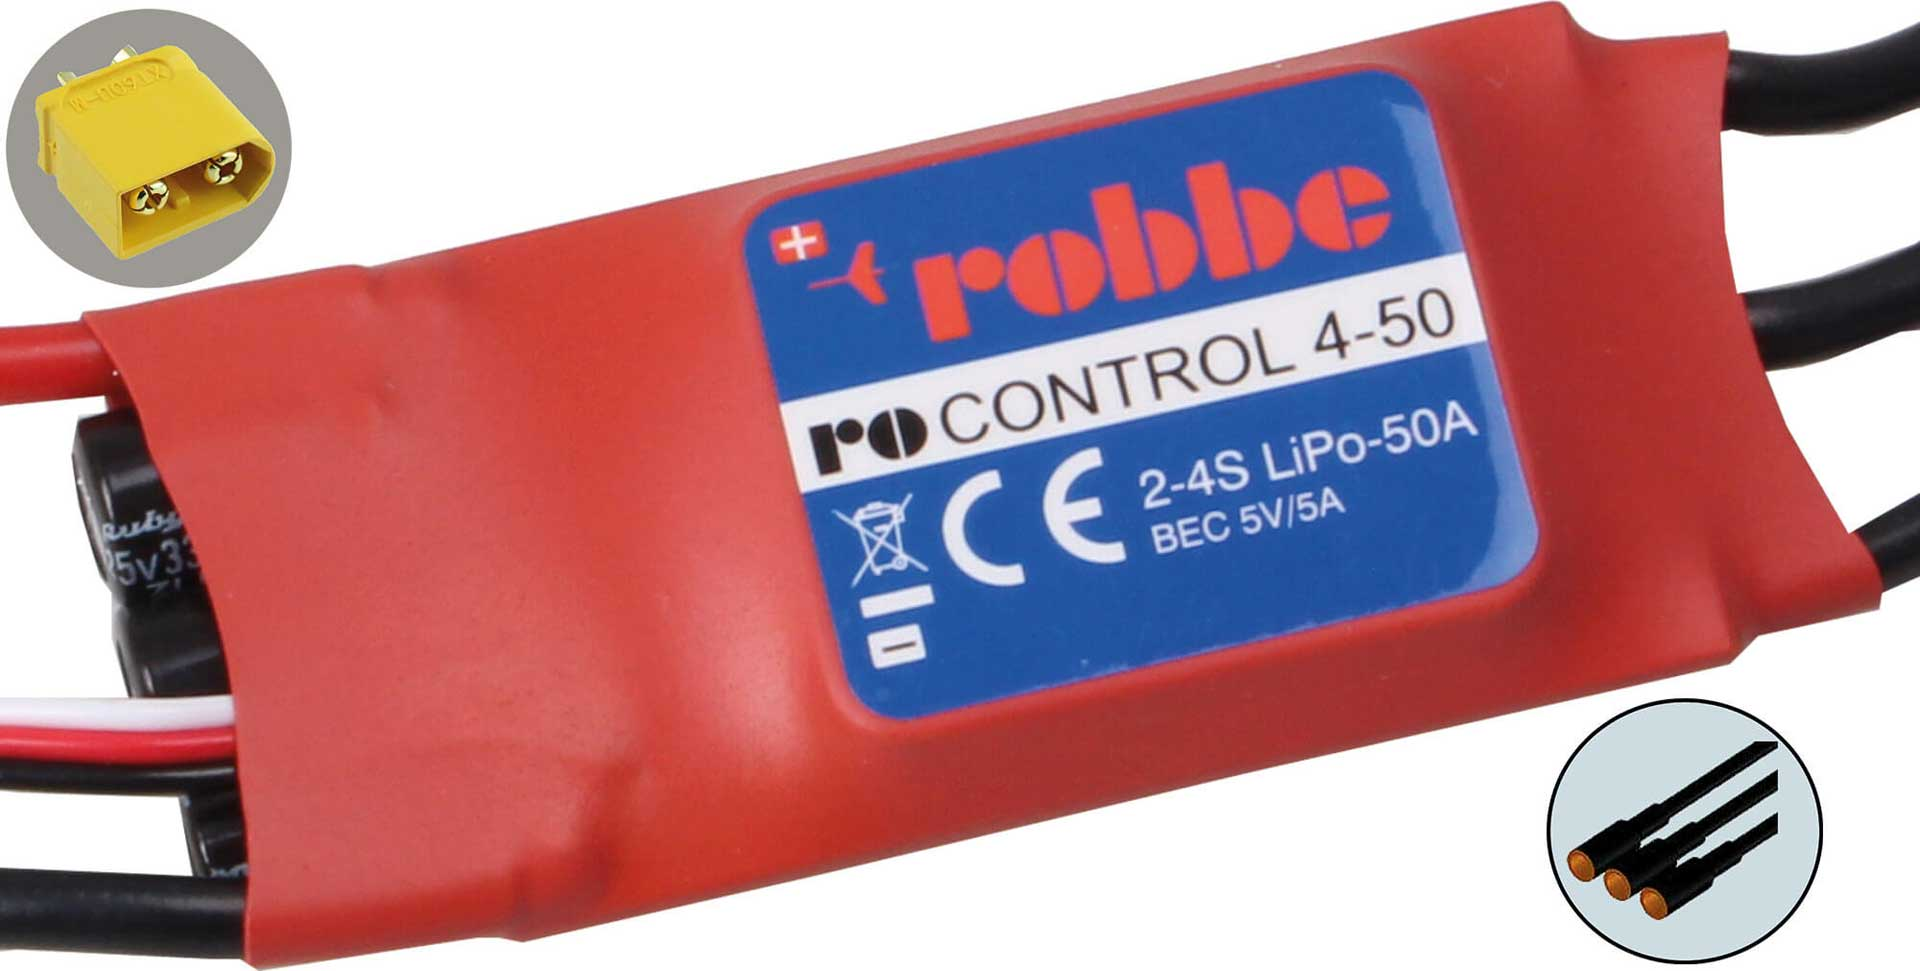 ROBBE RO-CONTROL 4-50 2-4S -50(70)A BL CONTROLLER 5V/5A SWITCH-BEC